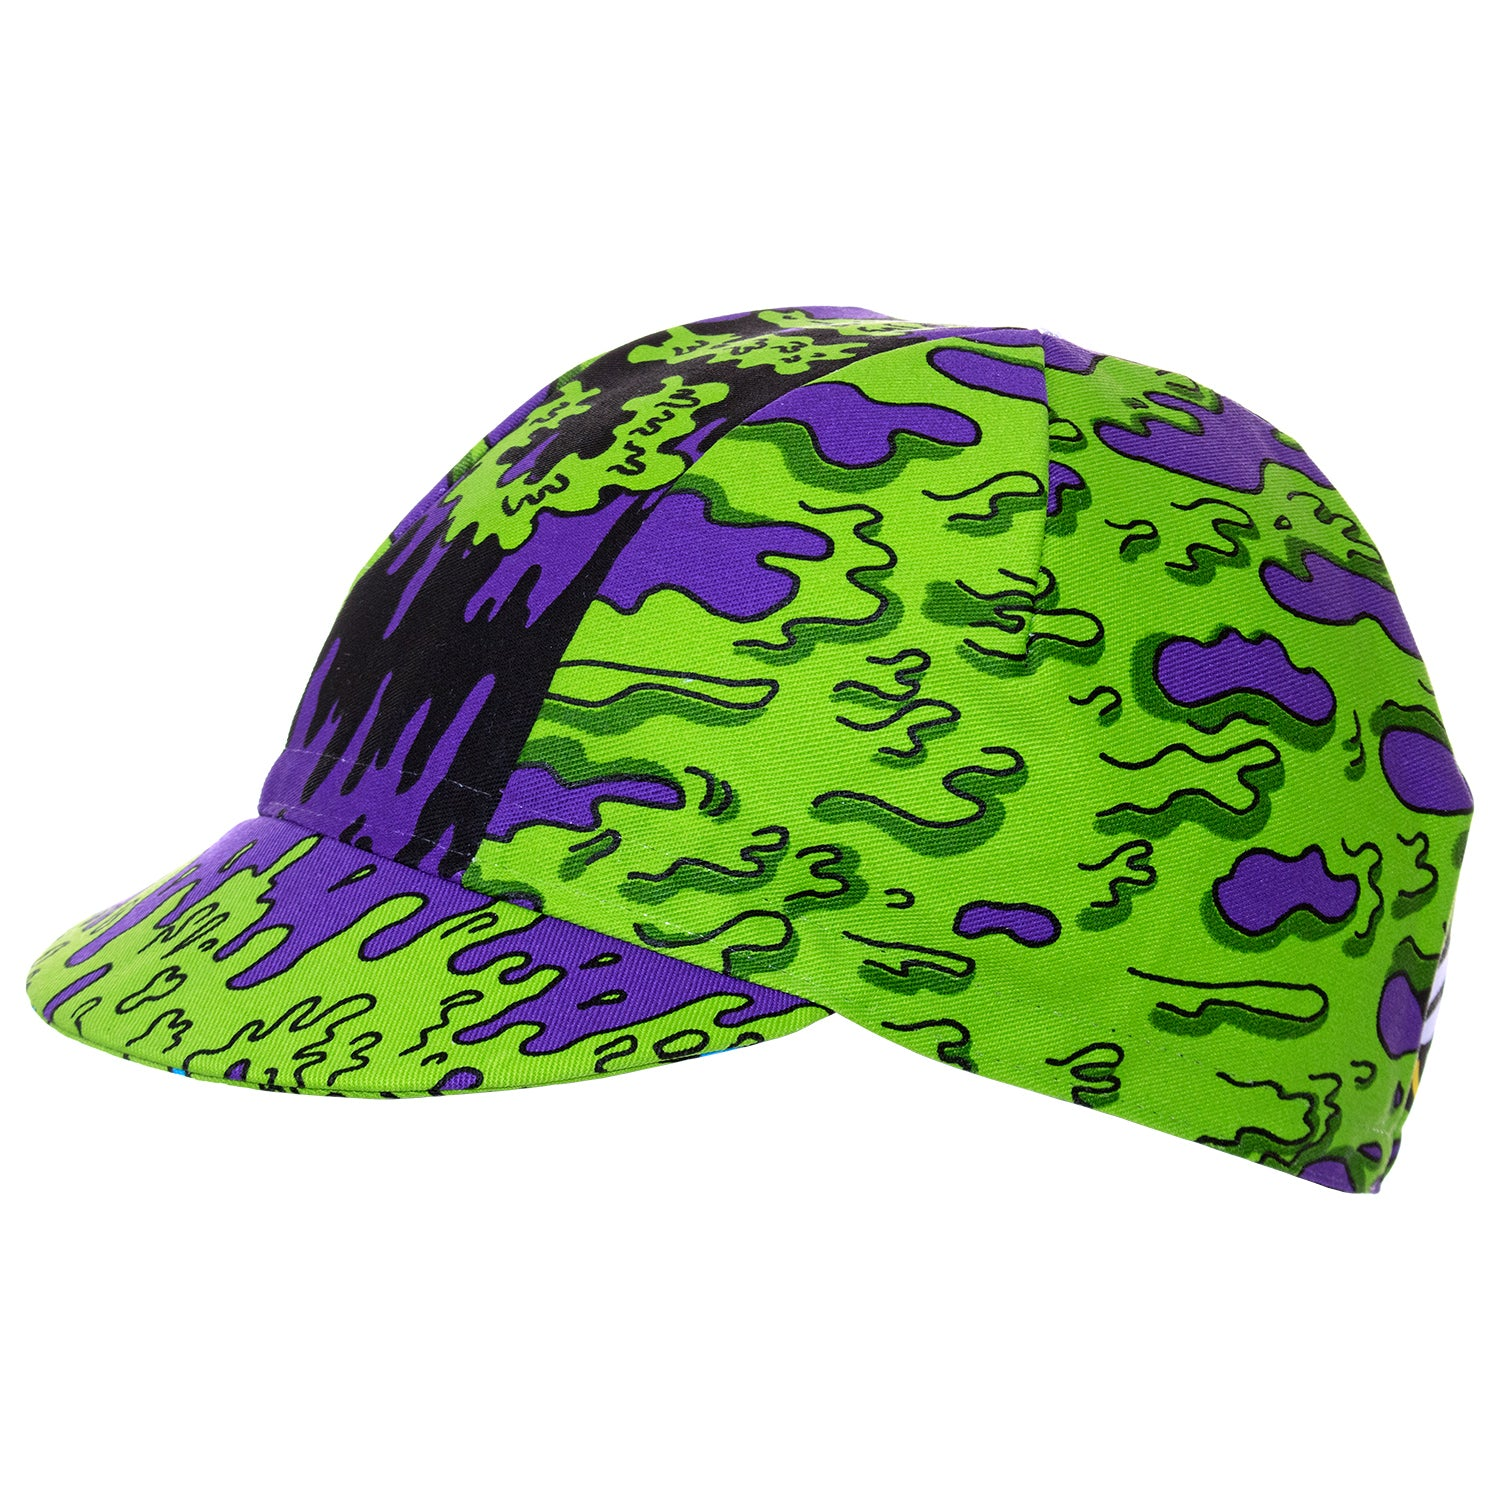 Cinelli Ana Benaroya Slime Cotton Cycling Cap